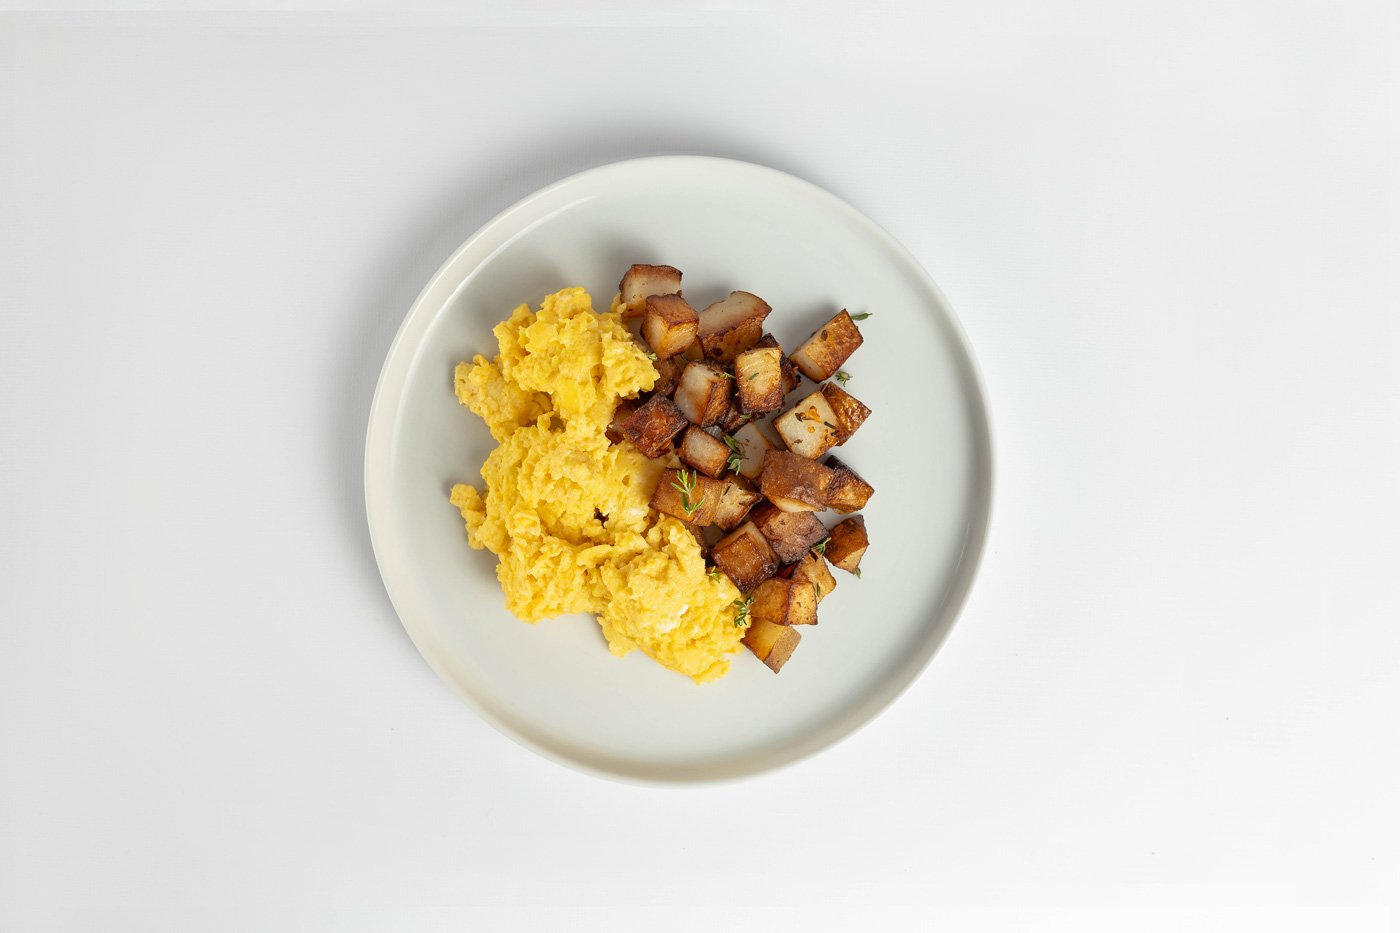 Egg Scramble and Potato Breakfast Product Image